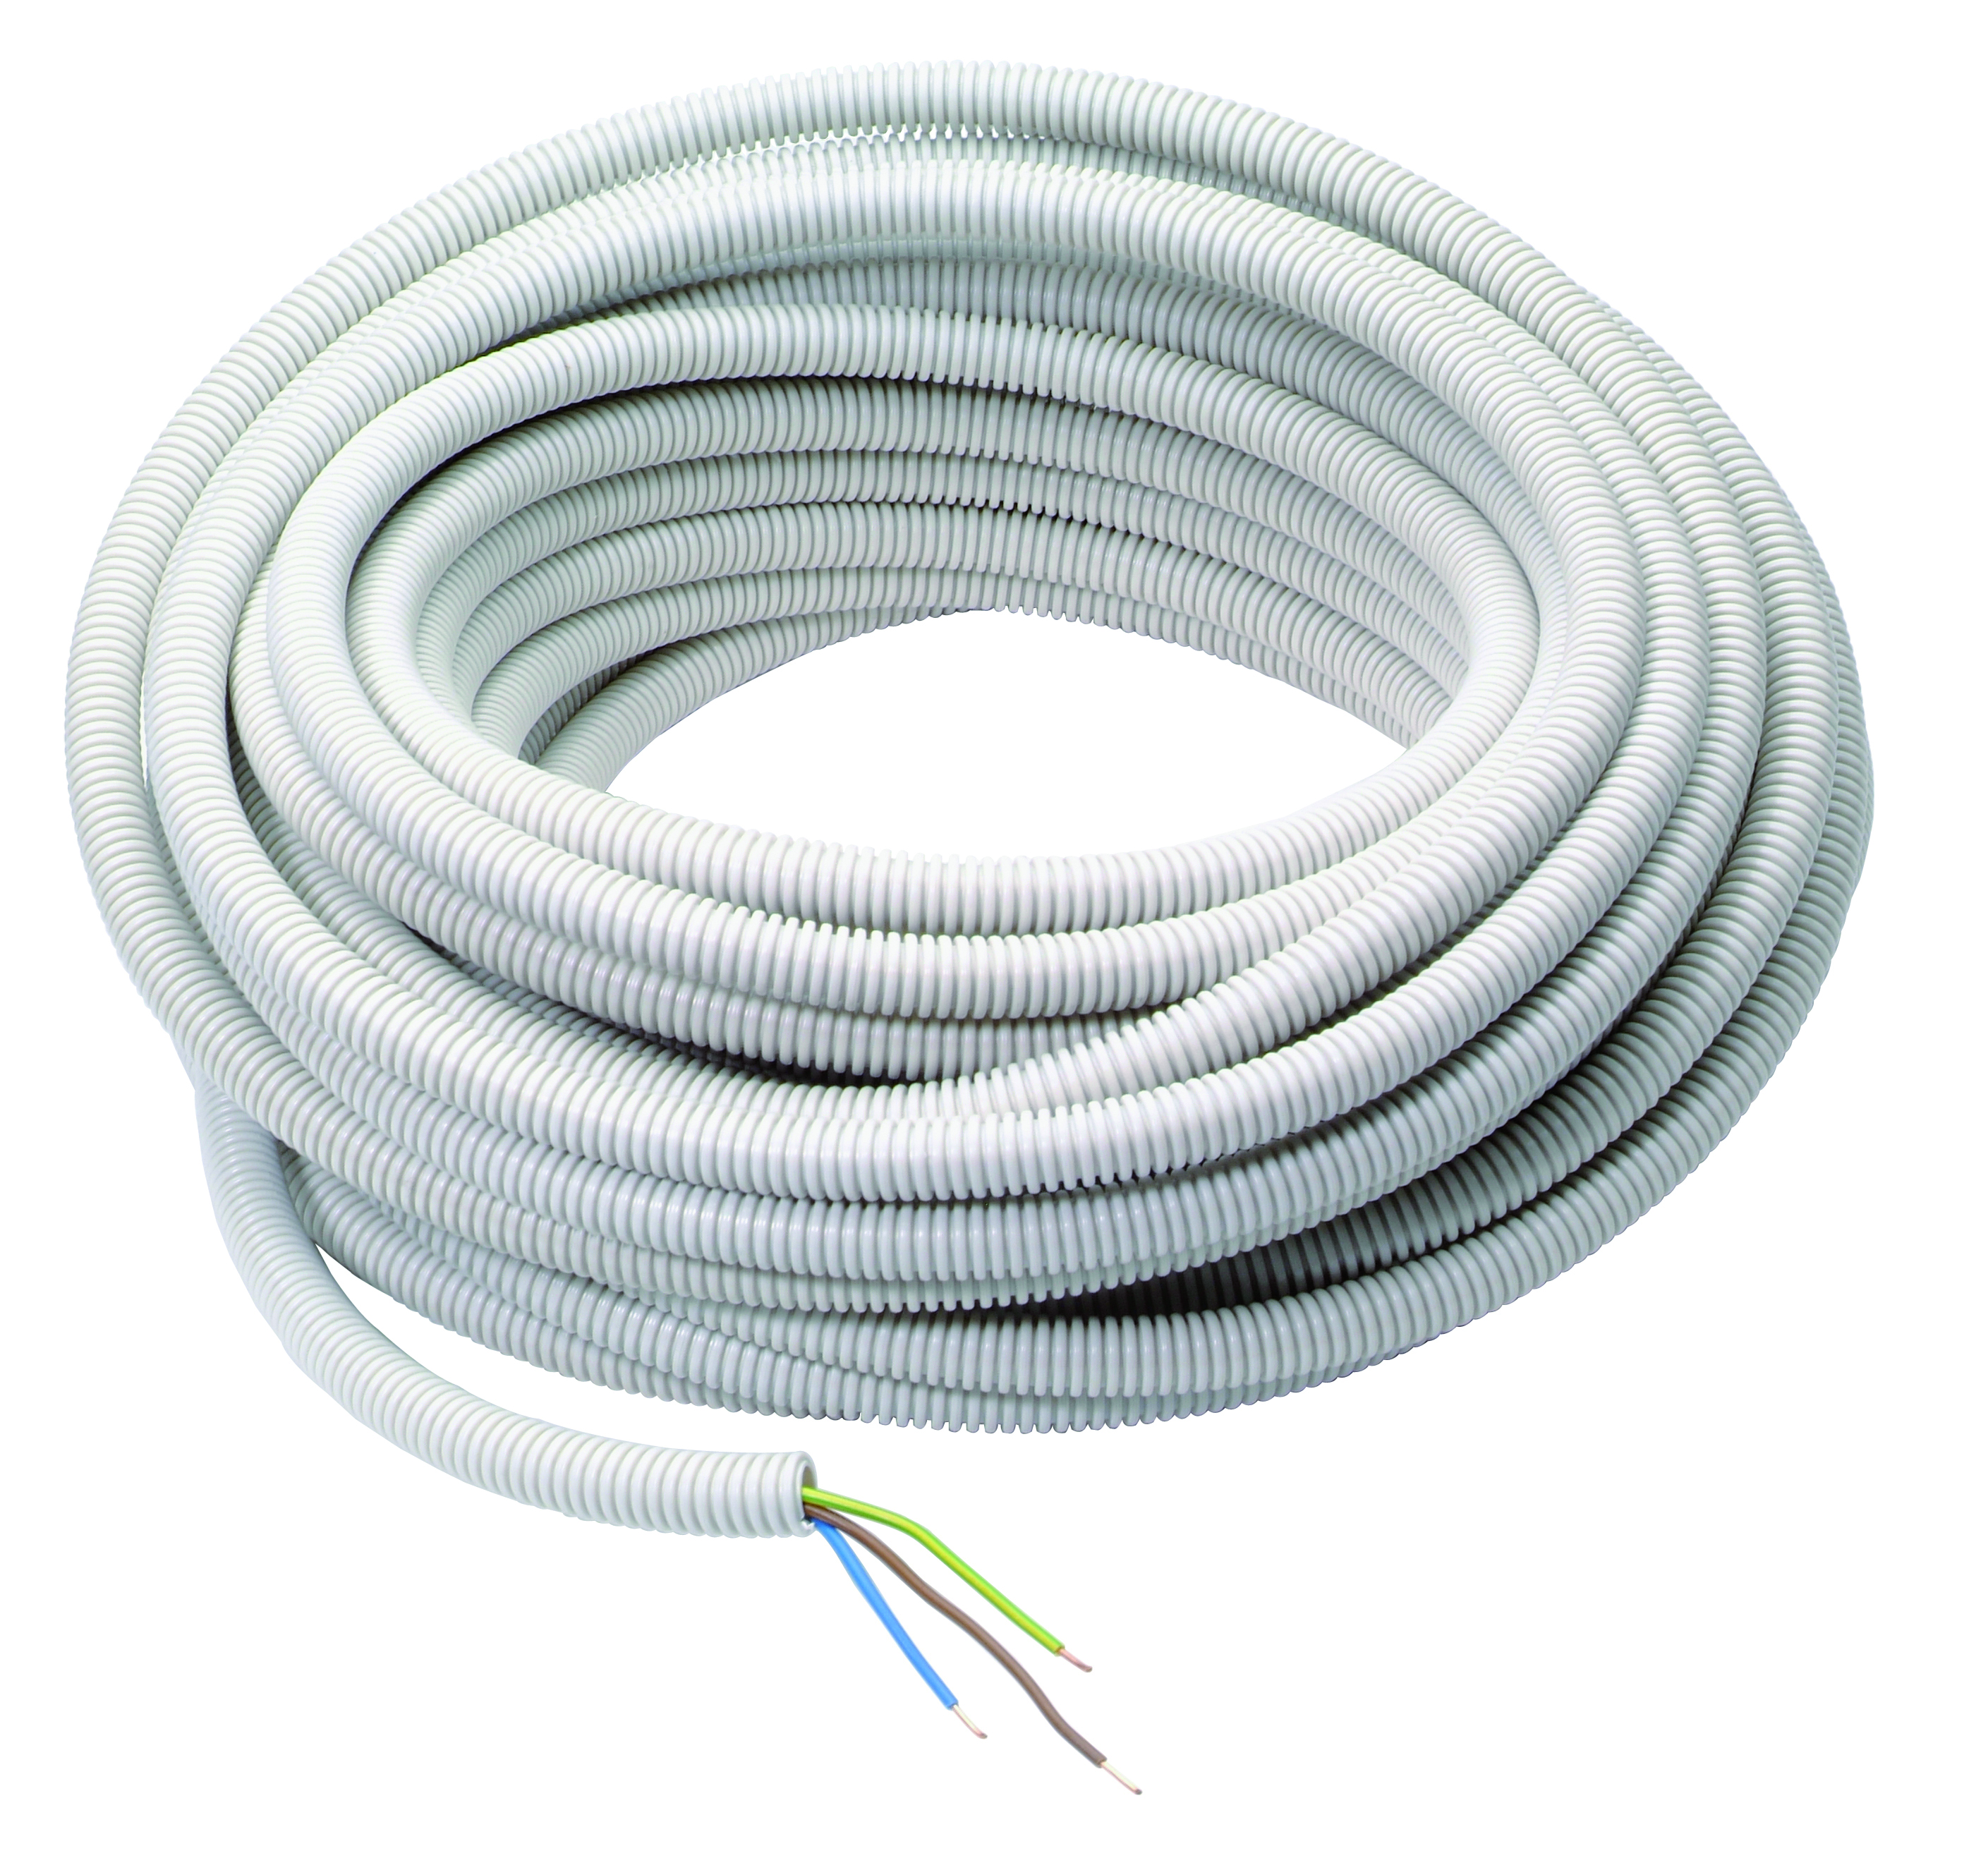 Products Pre Wiring Home Cable Wired Flex Conduit 16mm 3g15mm